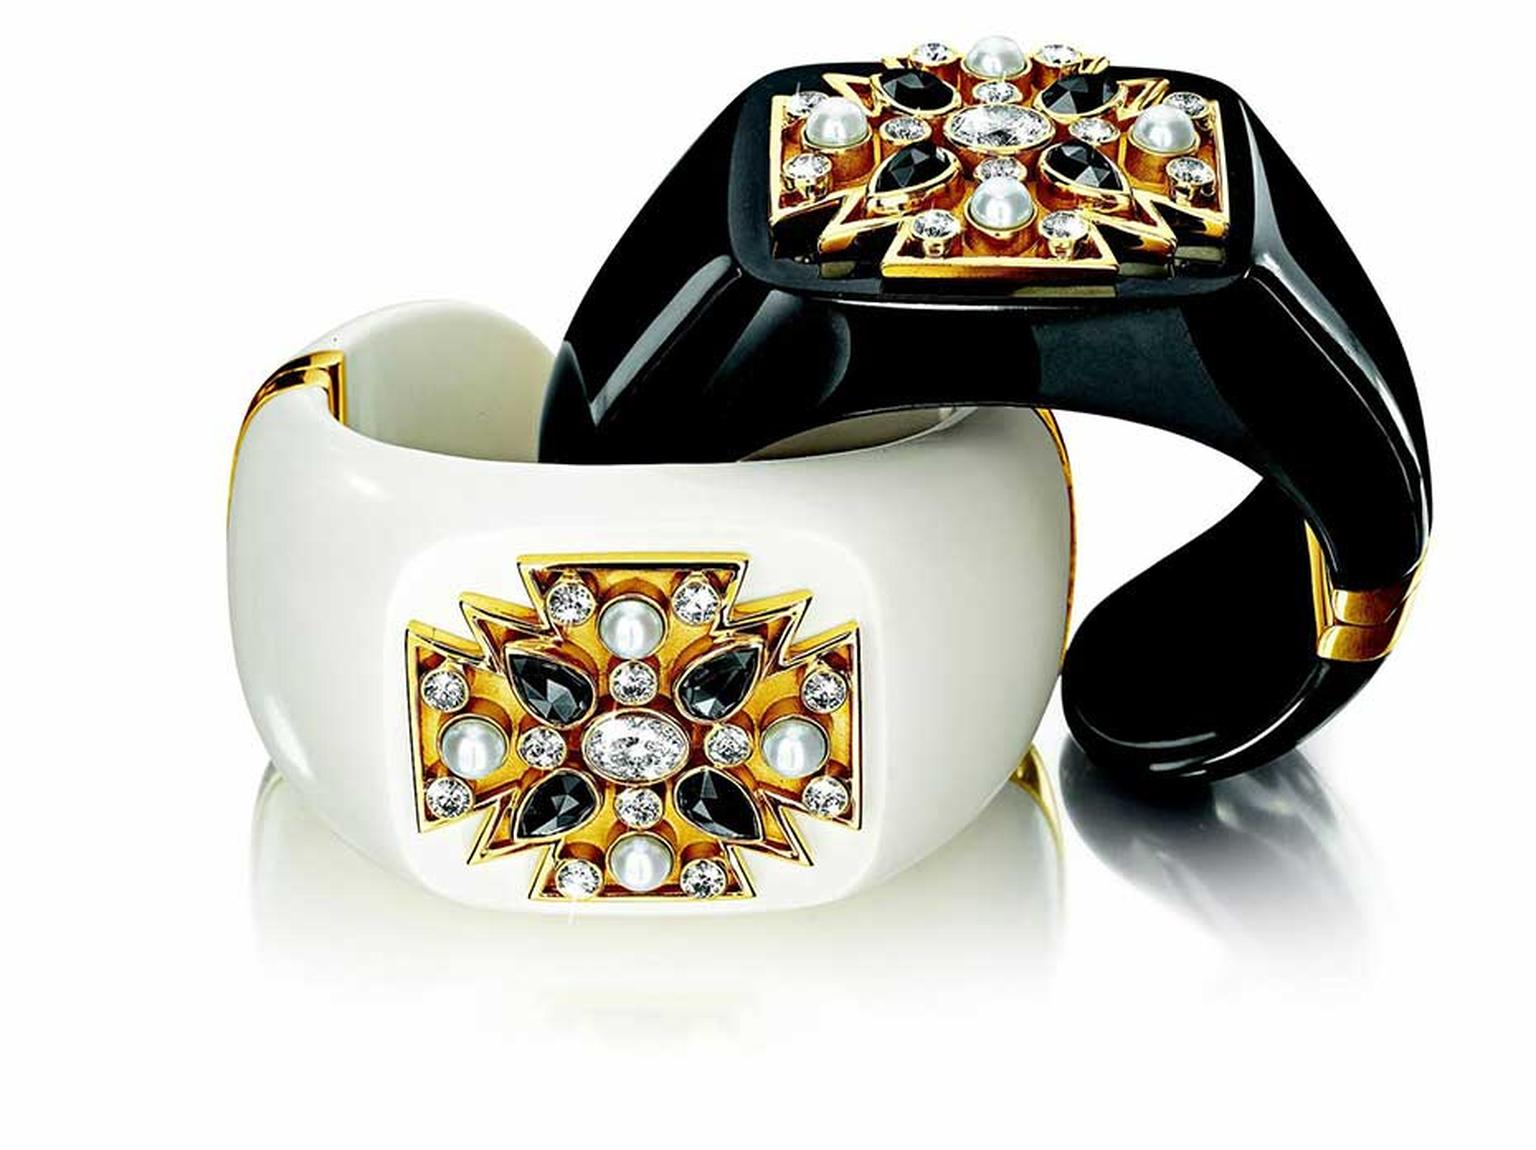 Verdura Maltese cuff featuring mammoth ivory or black jade with diamonds, pearls and gold.